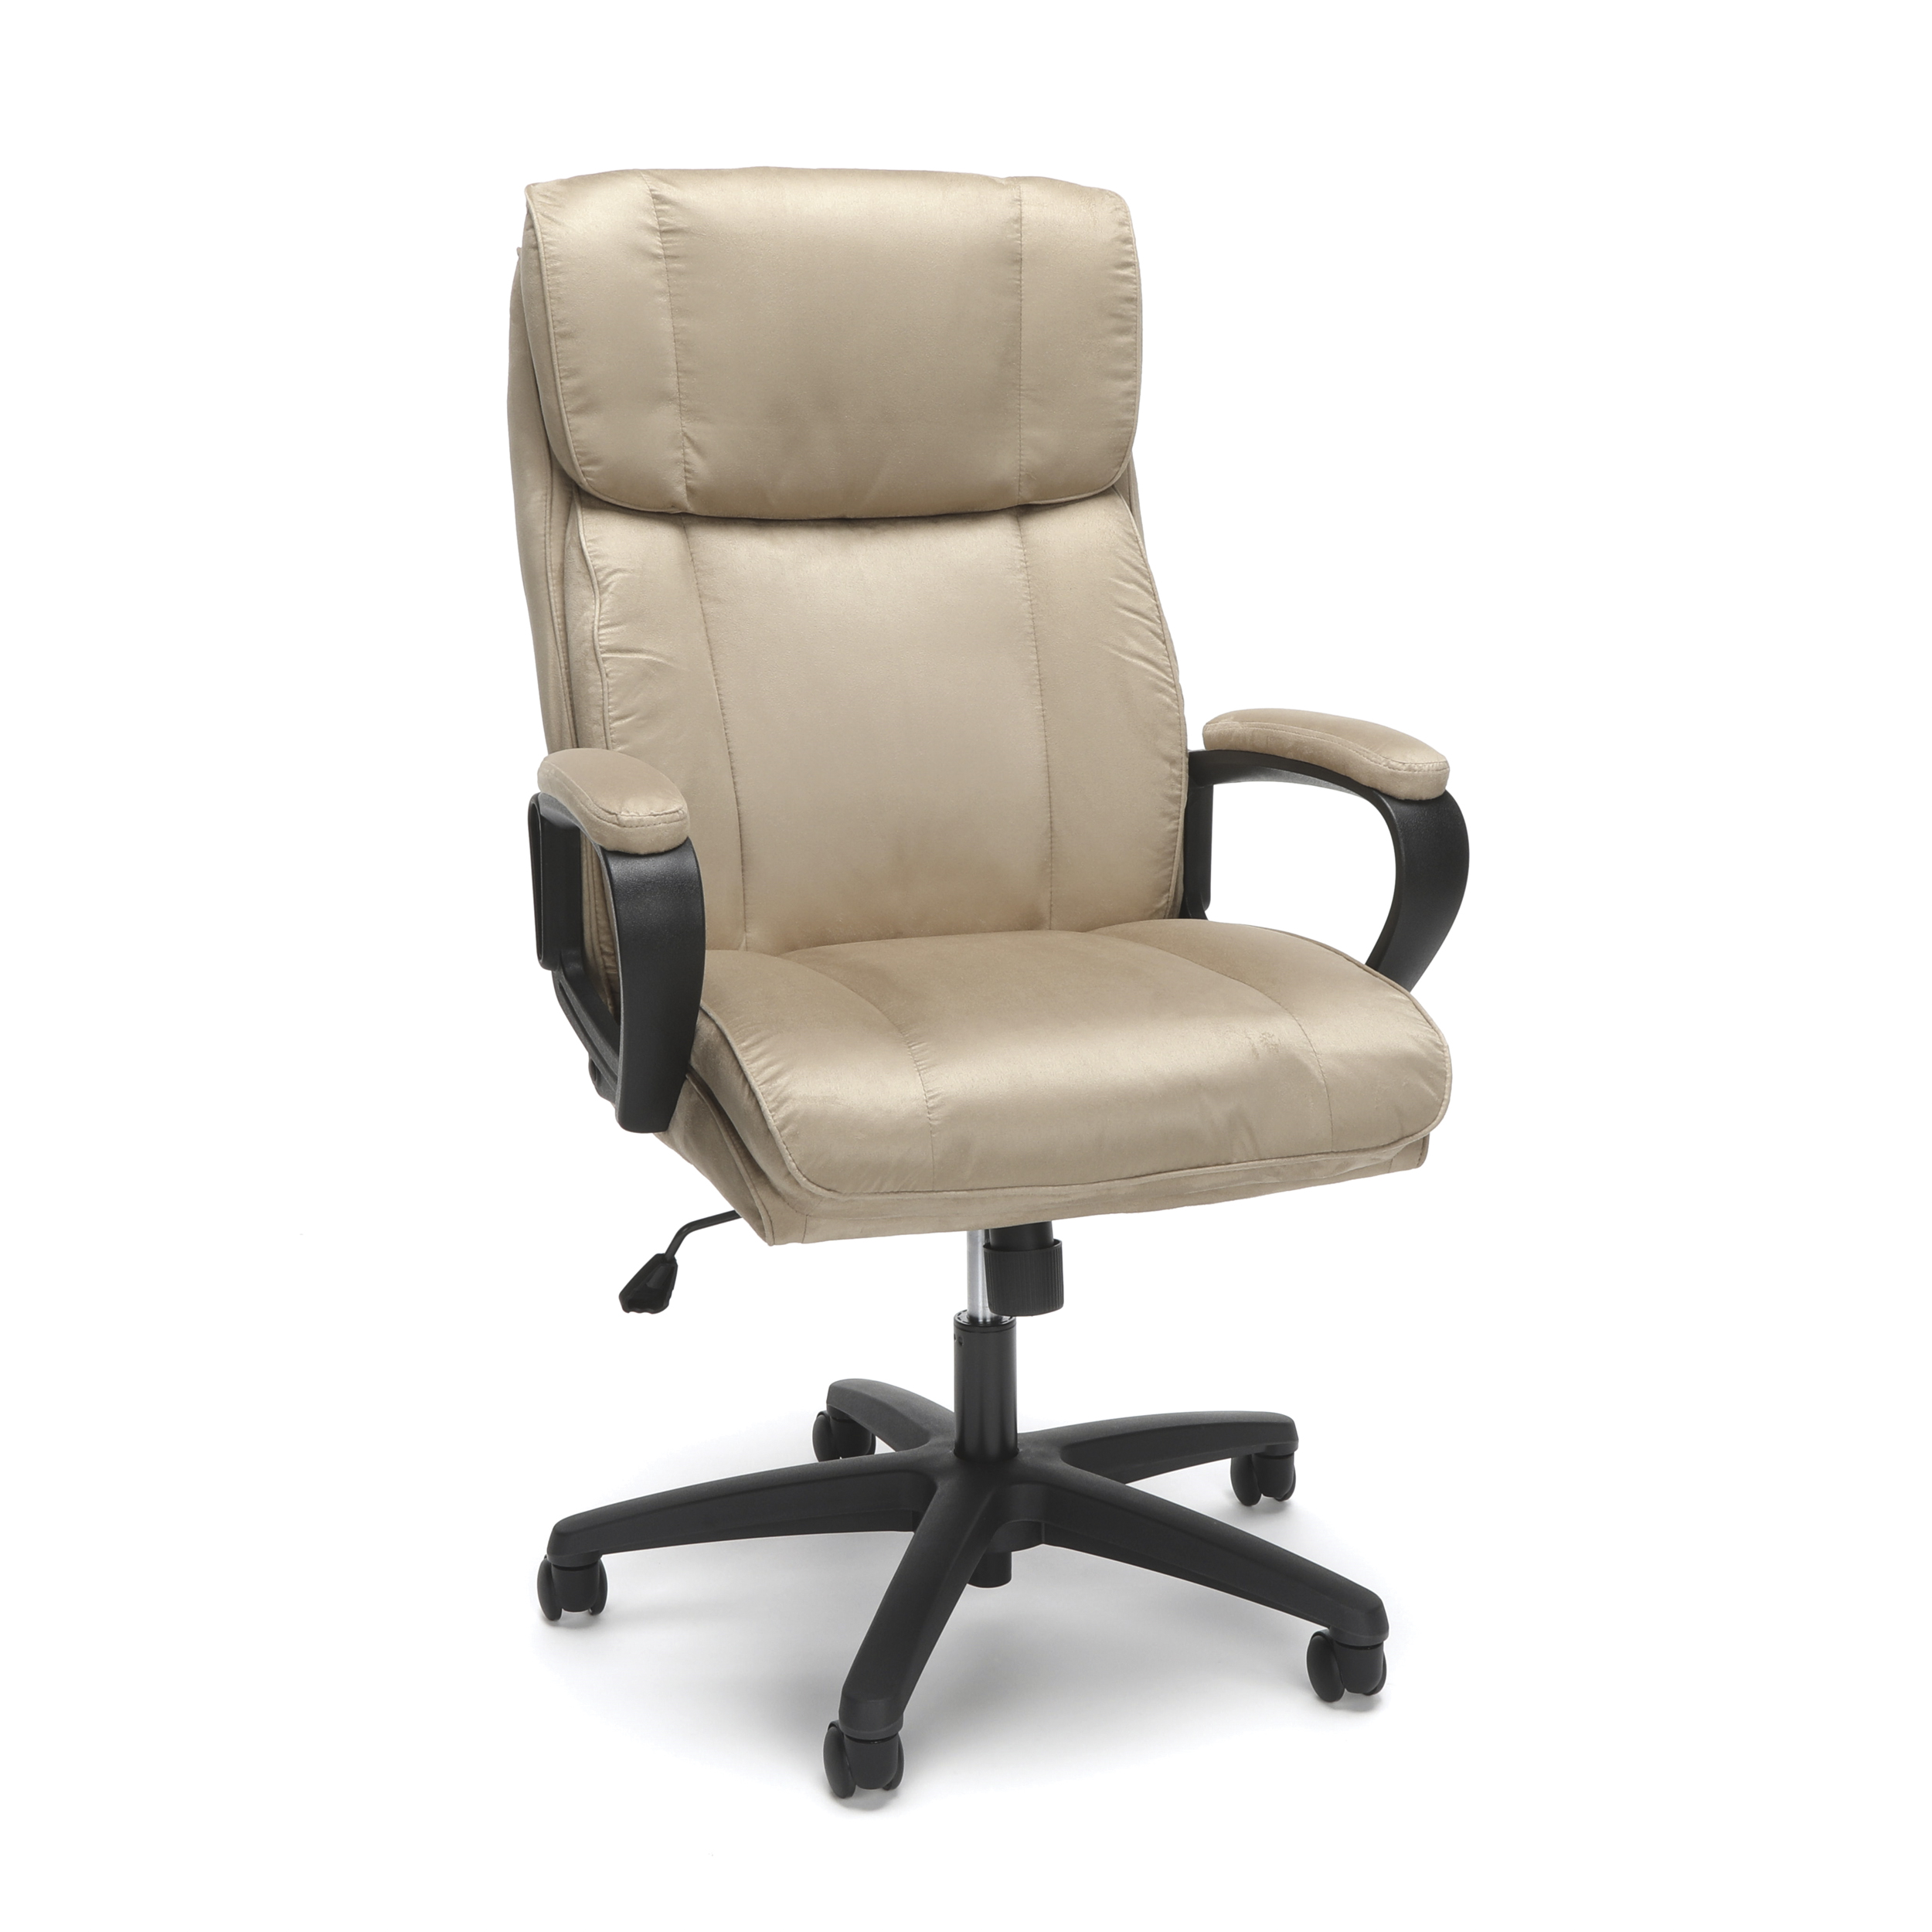 Essentials by OFM ESS-3081 Plush High-Back Microfiber Office Chair Tan - Walmart.com  sc 1 st  Walmart : microfiber office chair high back - Cheerinfomania.Com